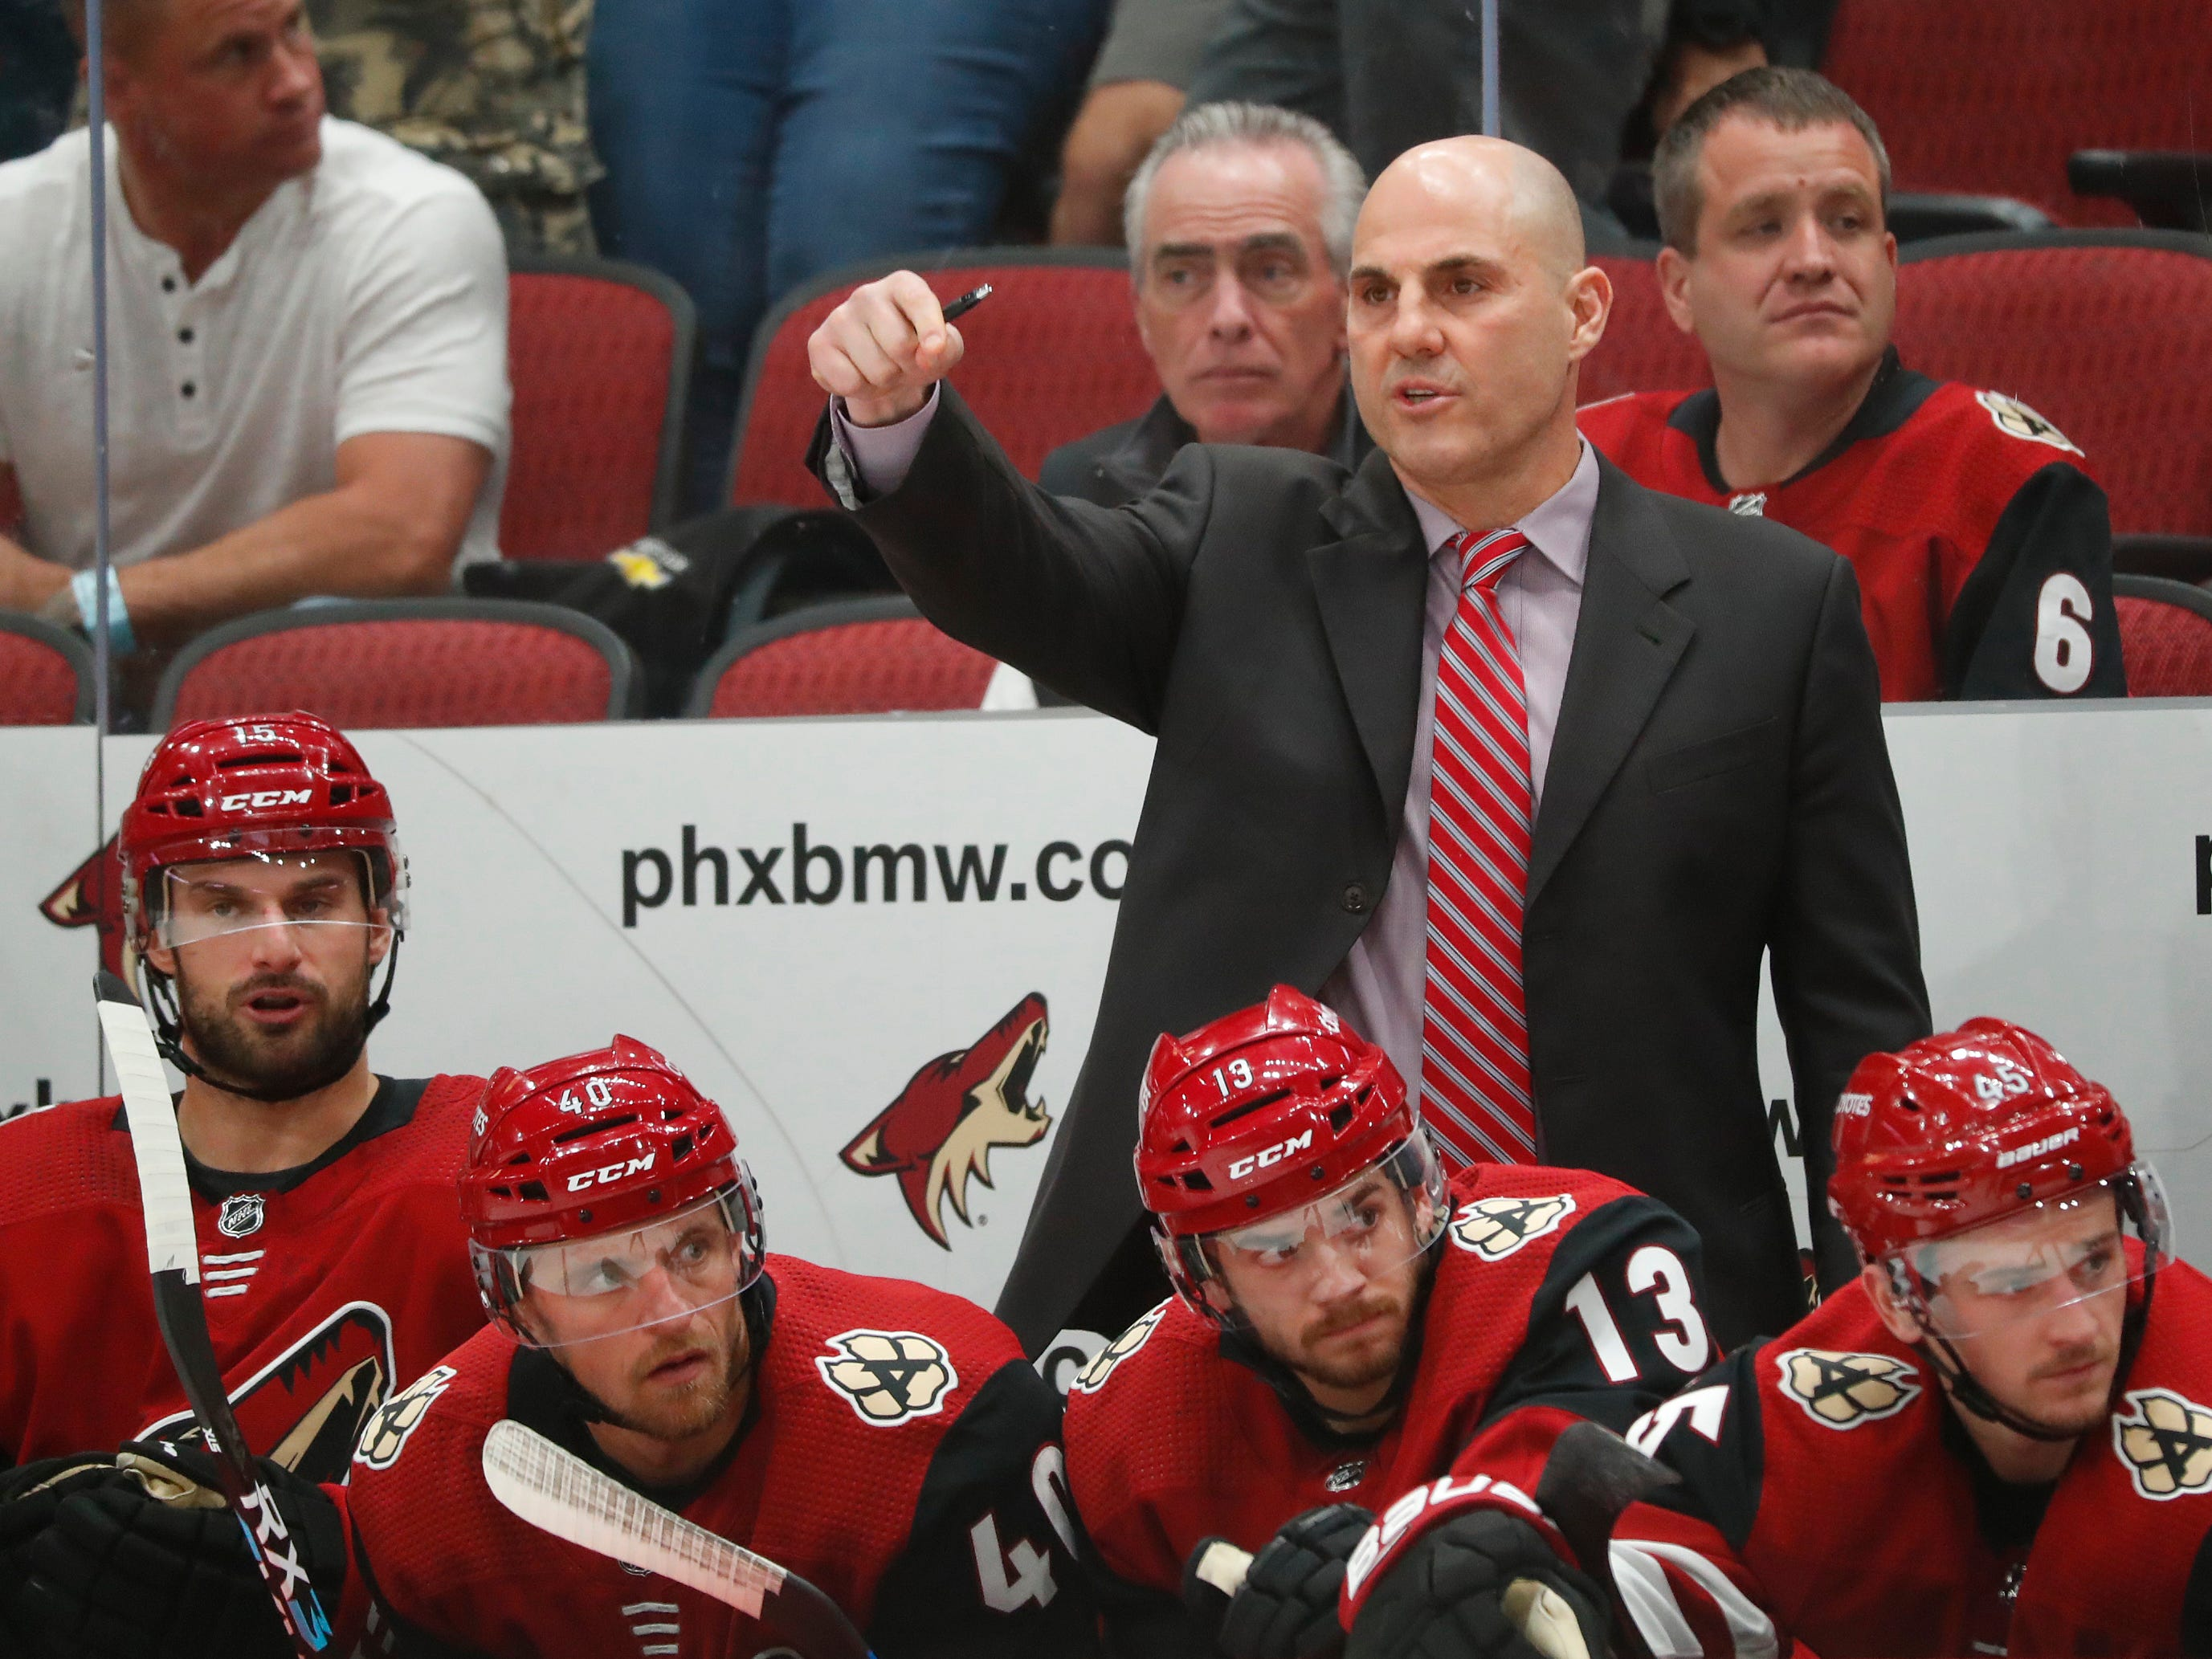 Coyotes' head coach Rick Tocchet talks as his team plays during the second period at Gila River Arena in Glendale, Ariz. on October 25, 2018.